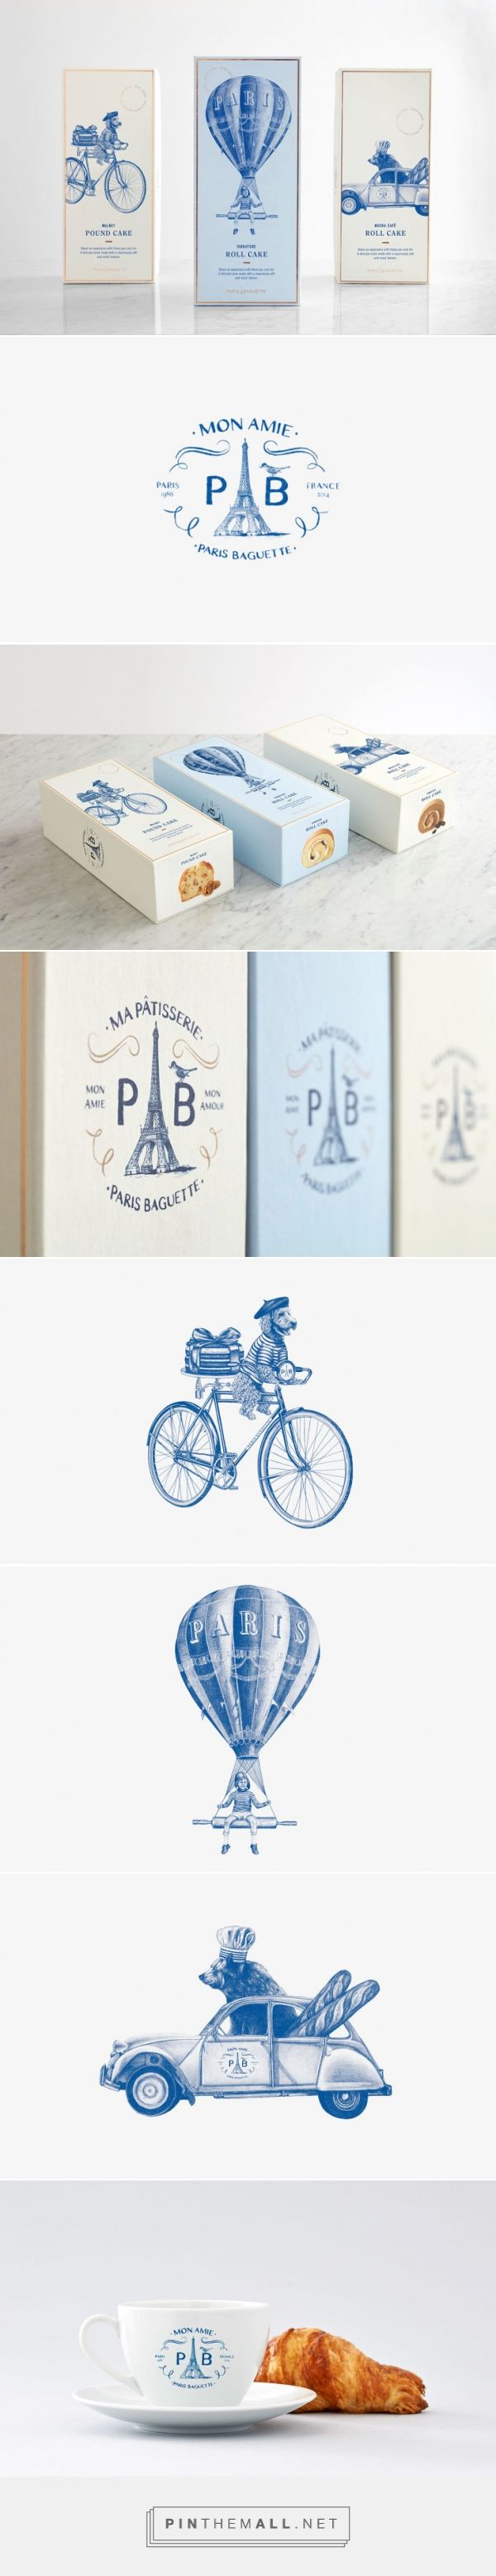 Paris Baguette | Fivestar Branding – Design and Branding Agency & Inspiration Gallery